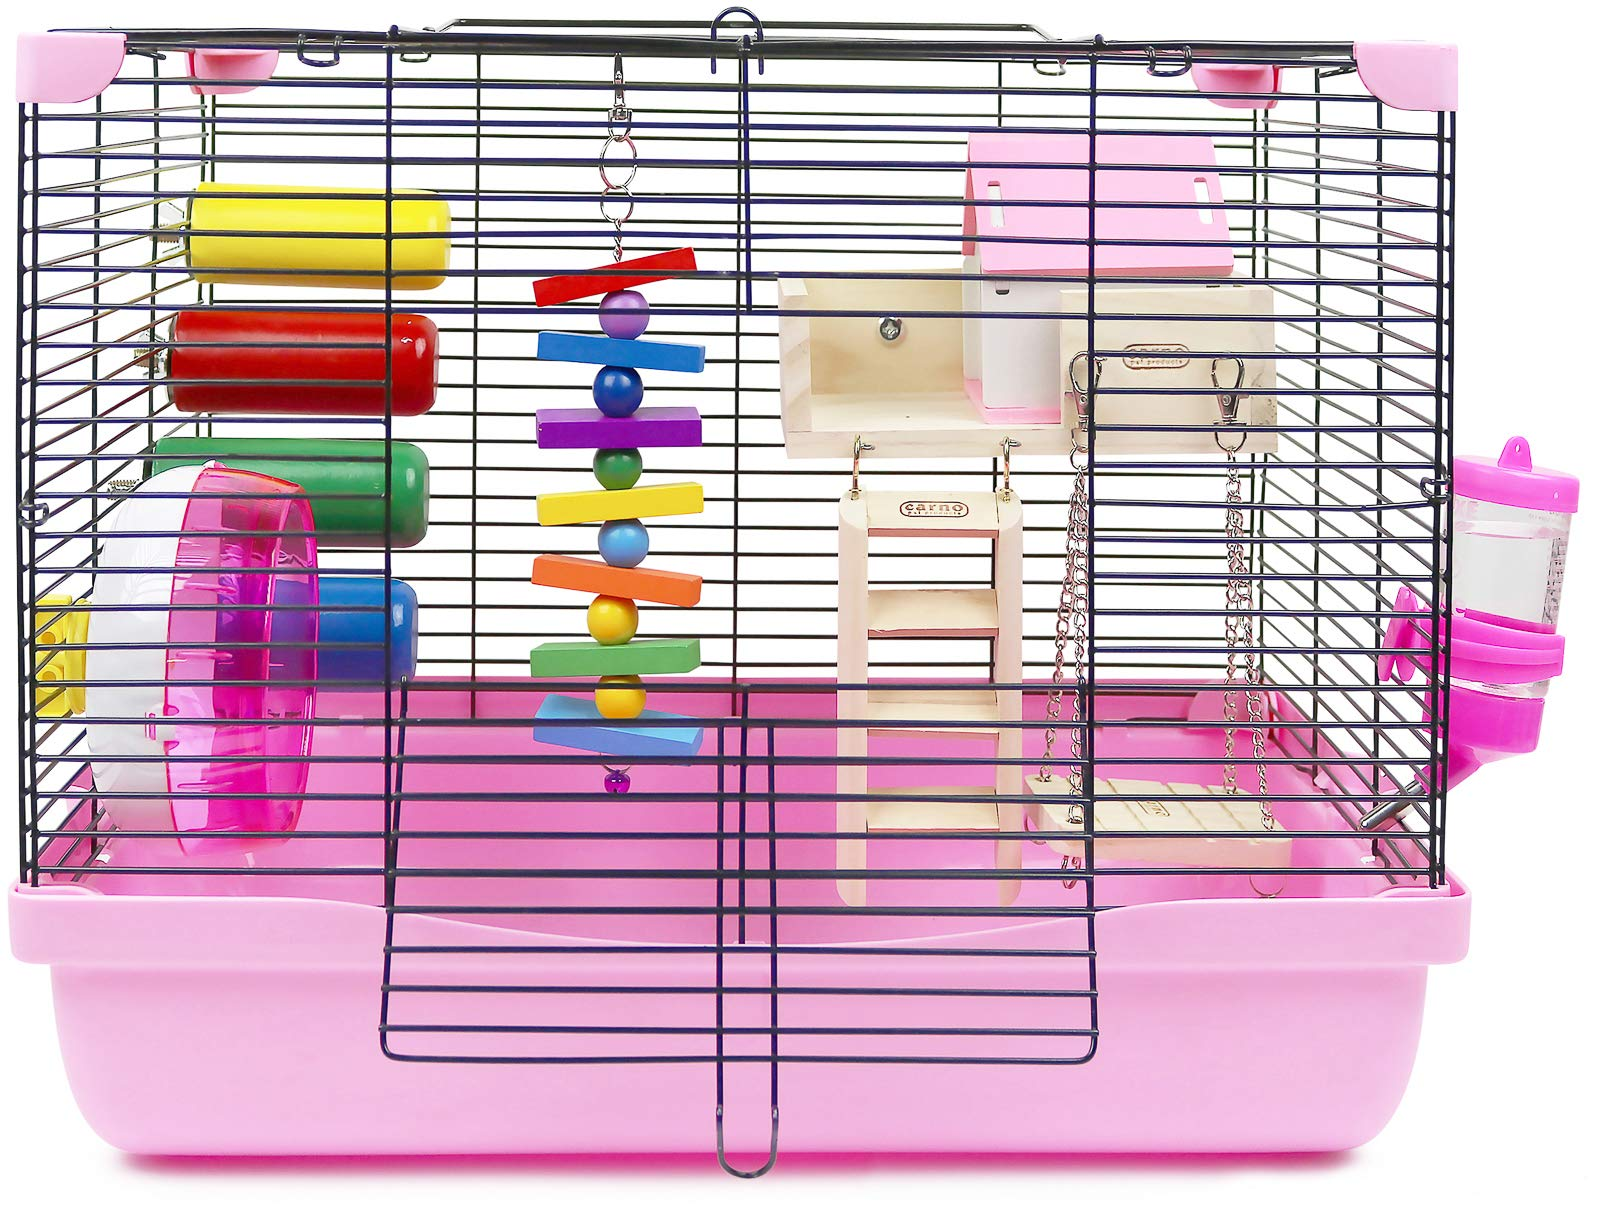 GalaPet Hamster and Guinea Pig Cage Habitat for Small Animal with Accessories